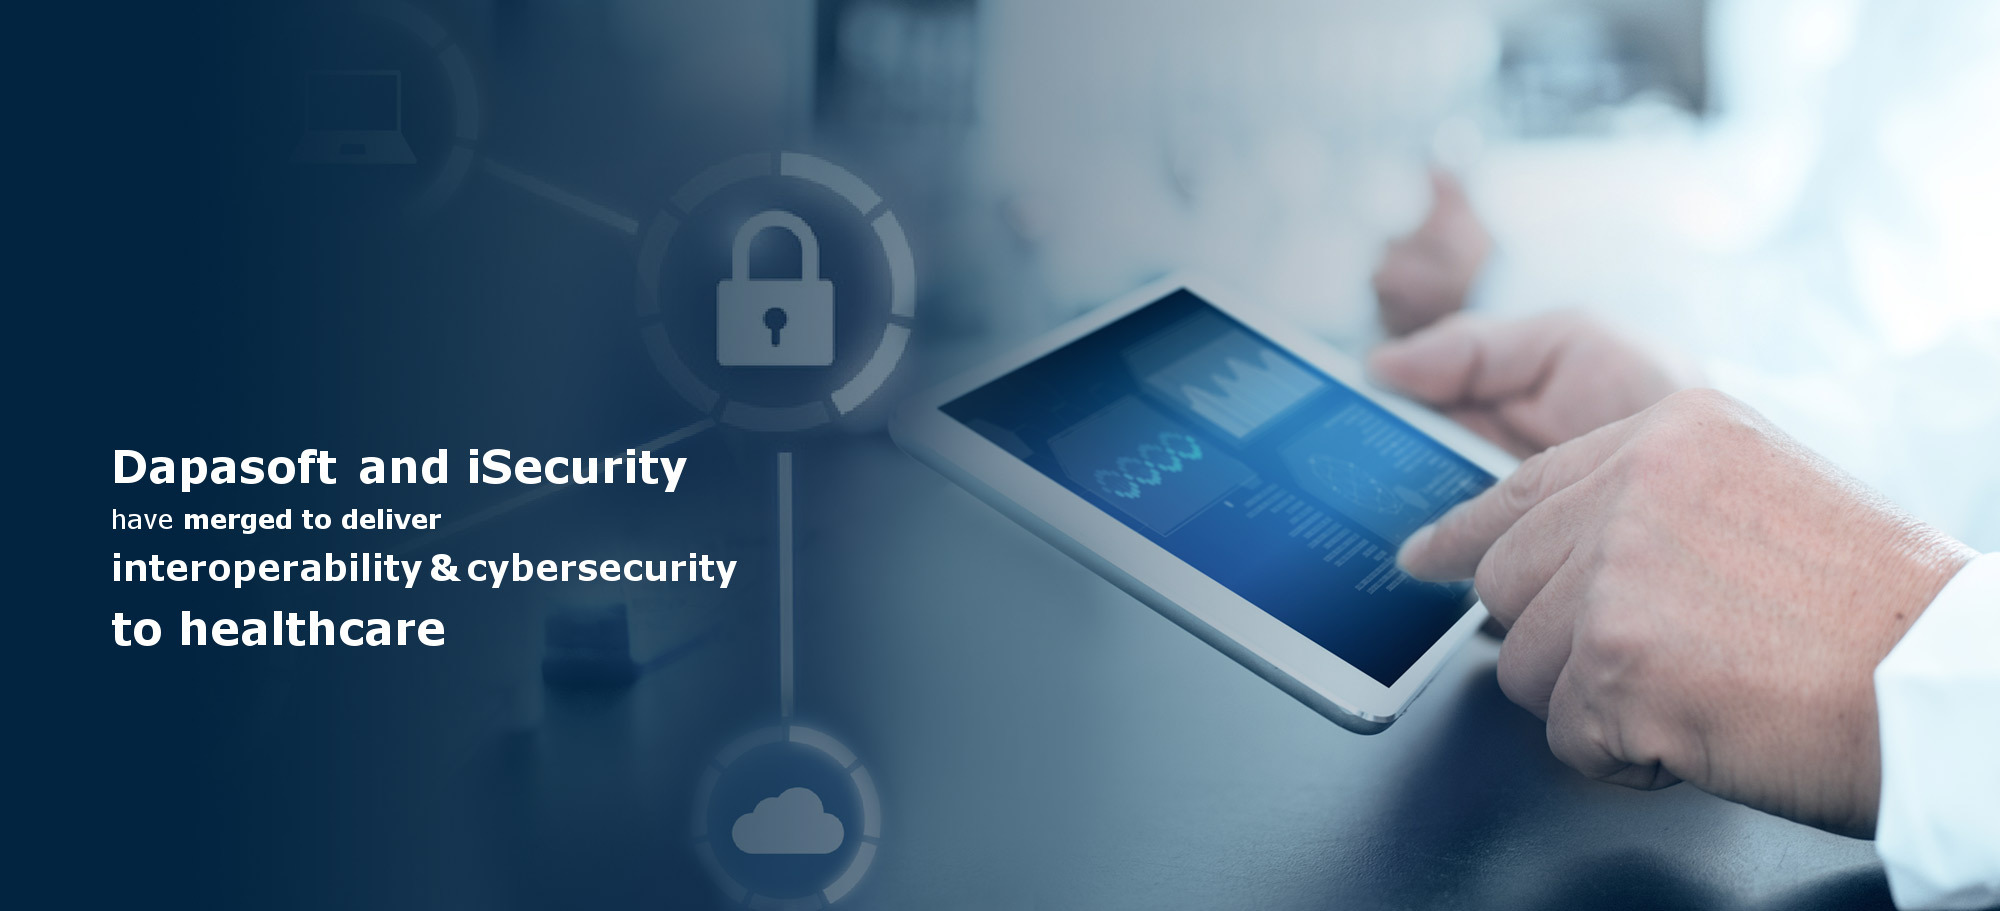 Dapasoft and iSecurity Announce Business Combination